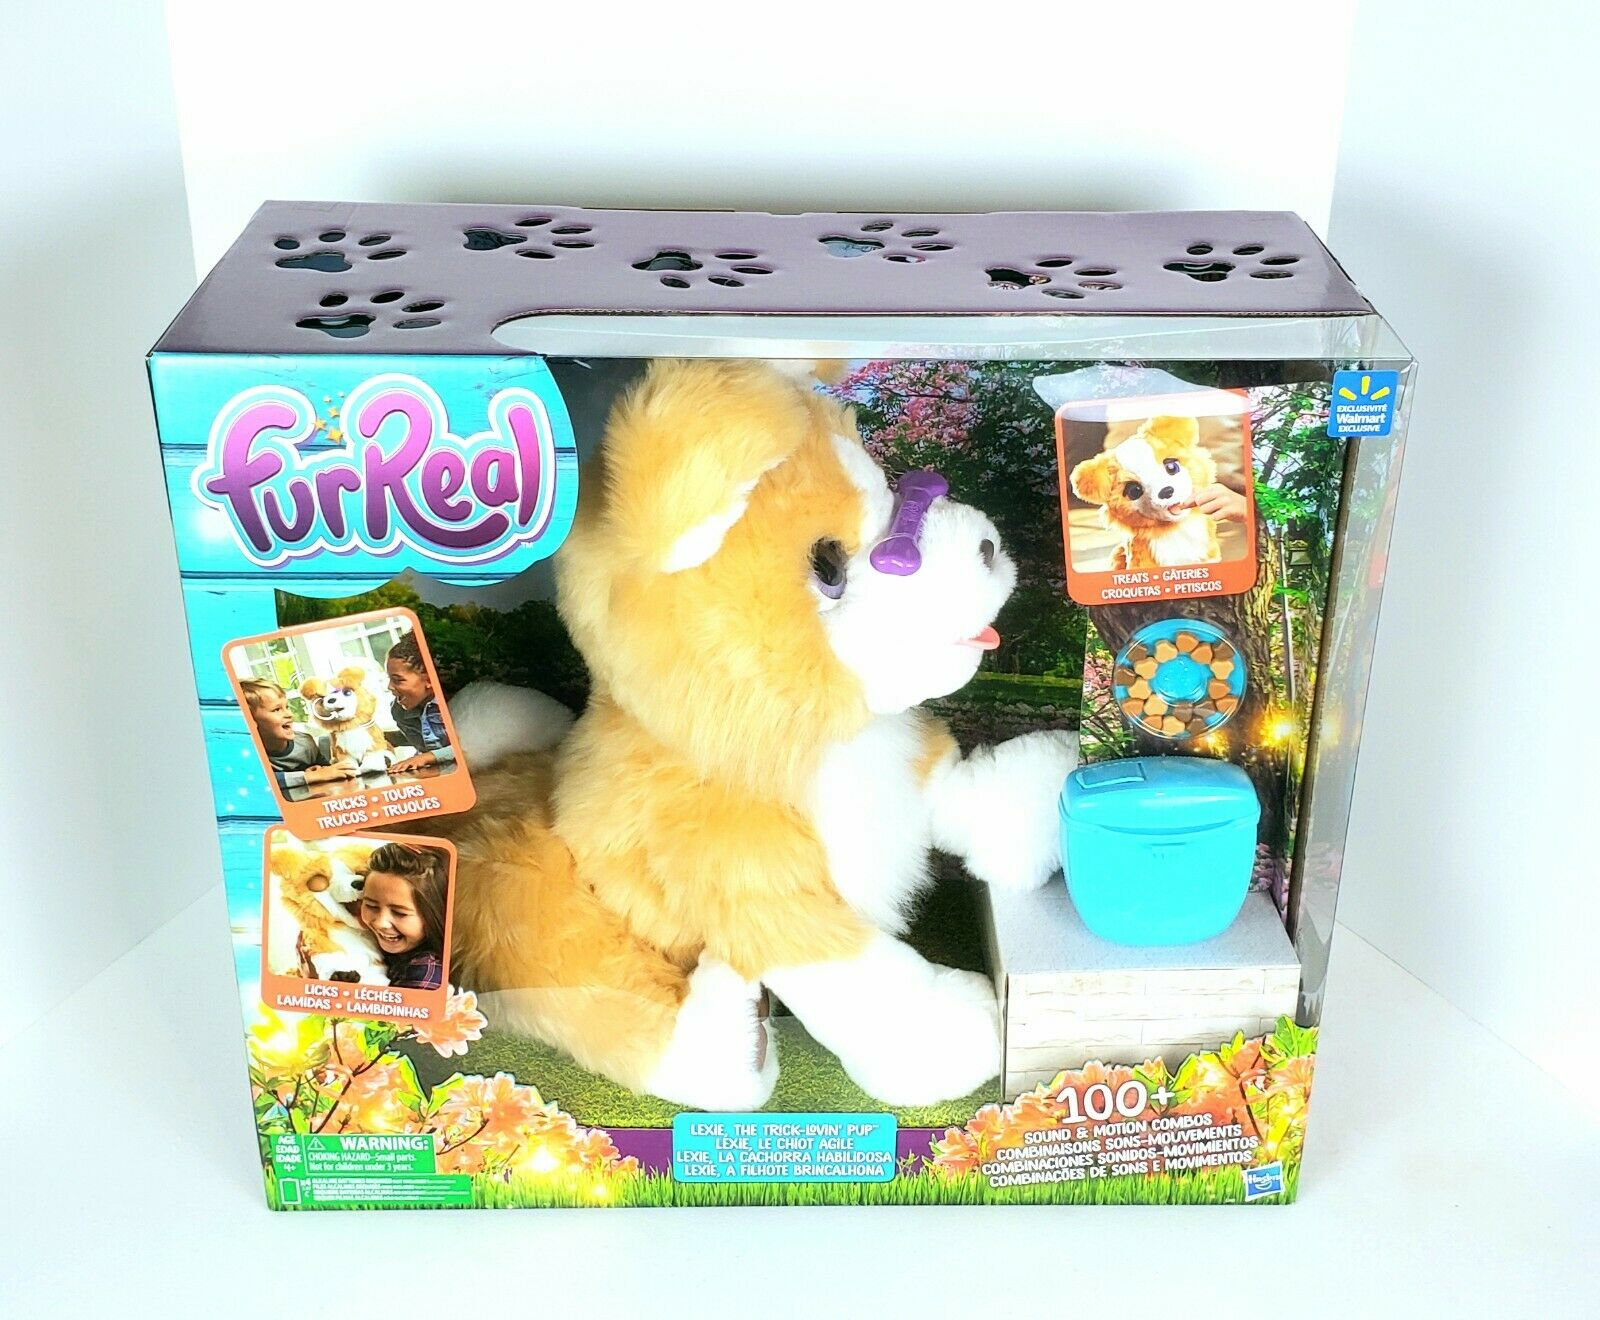 NEW  FurReal Lexie The Trick-Lovin' Pup Hund 100+ Sounds Motions Spielzeug From Hasbro